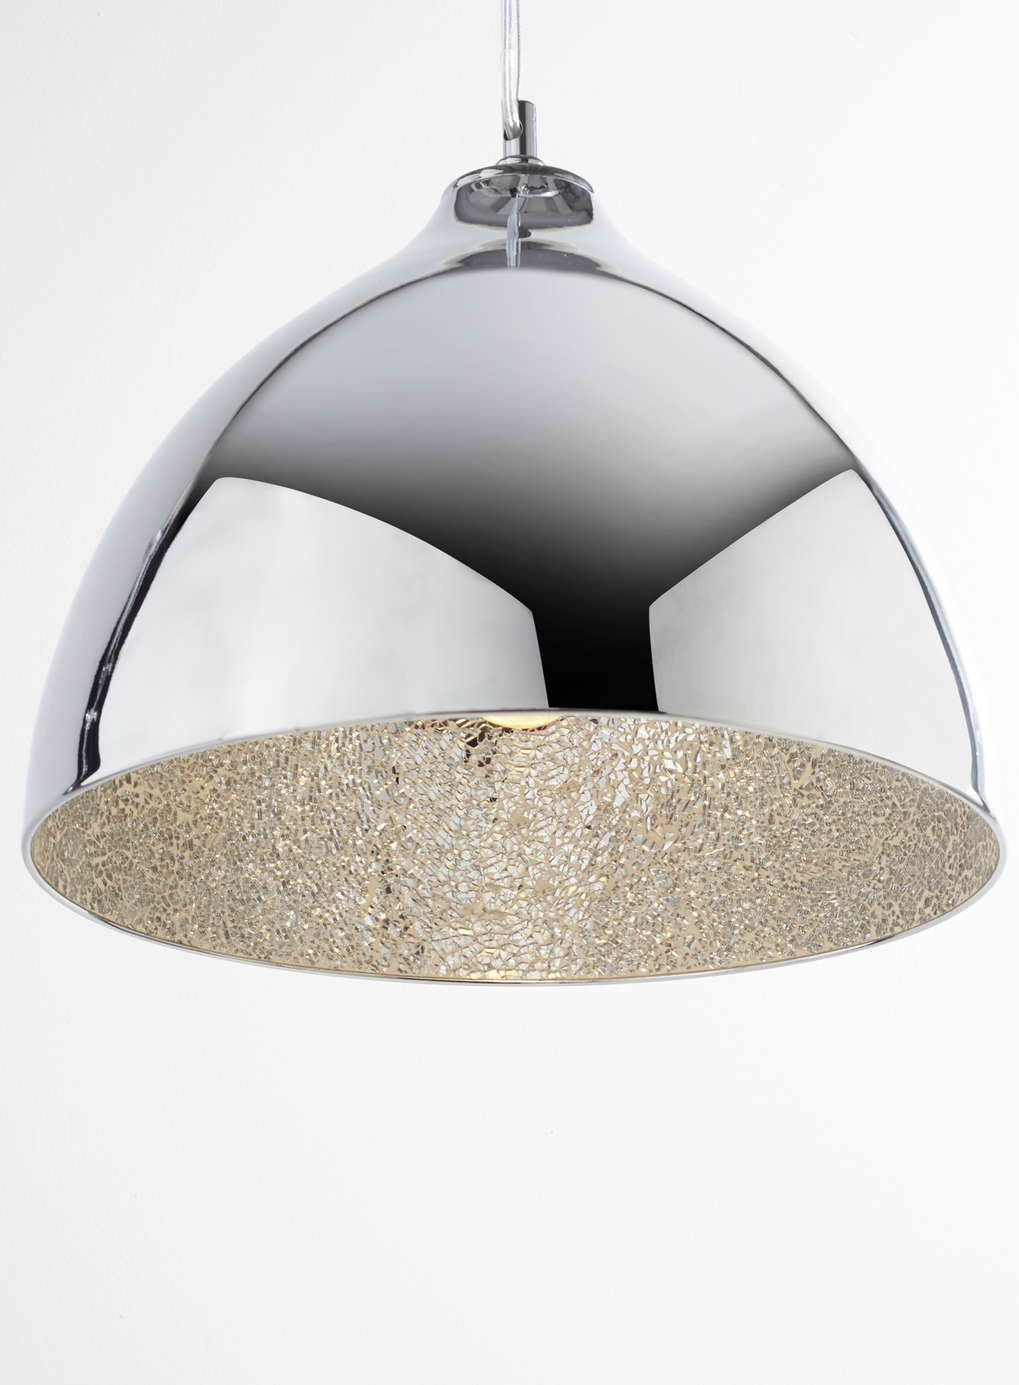 Maya Wall Light Bhs : Bhs Outdoor Lighting - Bhs Lynton Outdoor Wall Light Stainless Steel Review, Bhs Ceiling Light ...